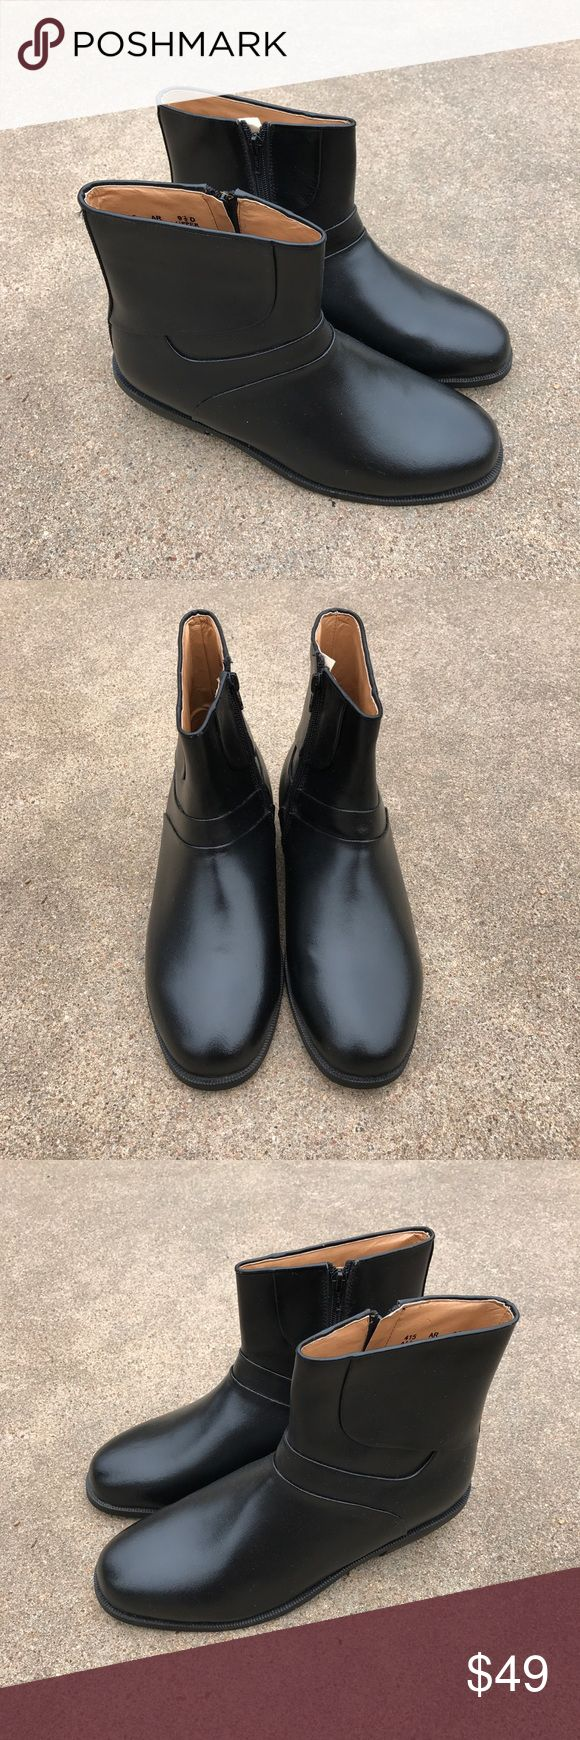 Haband Executive  Lion's Den Men's Ankle Boots Lovely Haband Executive Division Lions Den men's ankle boots black leather Size 9.5D Condition. Pre-owned, in good condition. Haband Shoes Boots